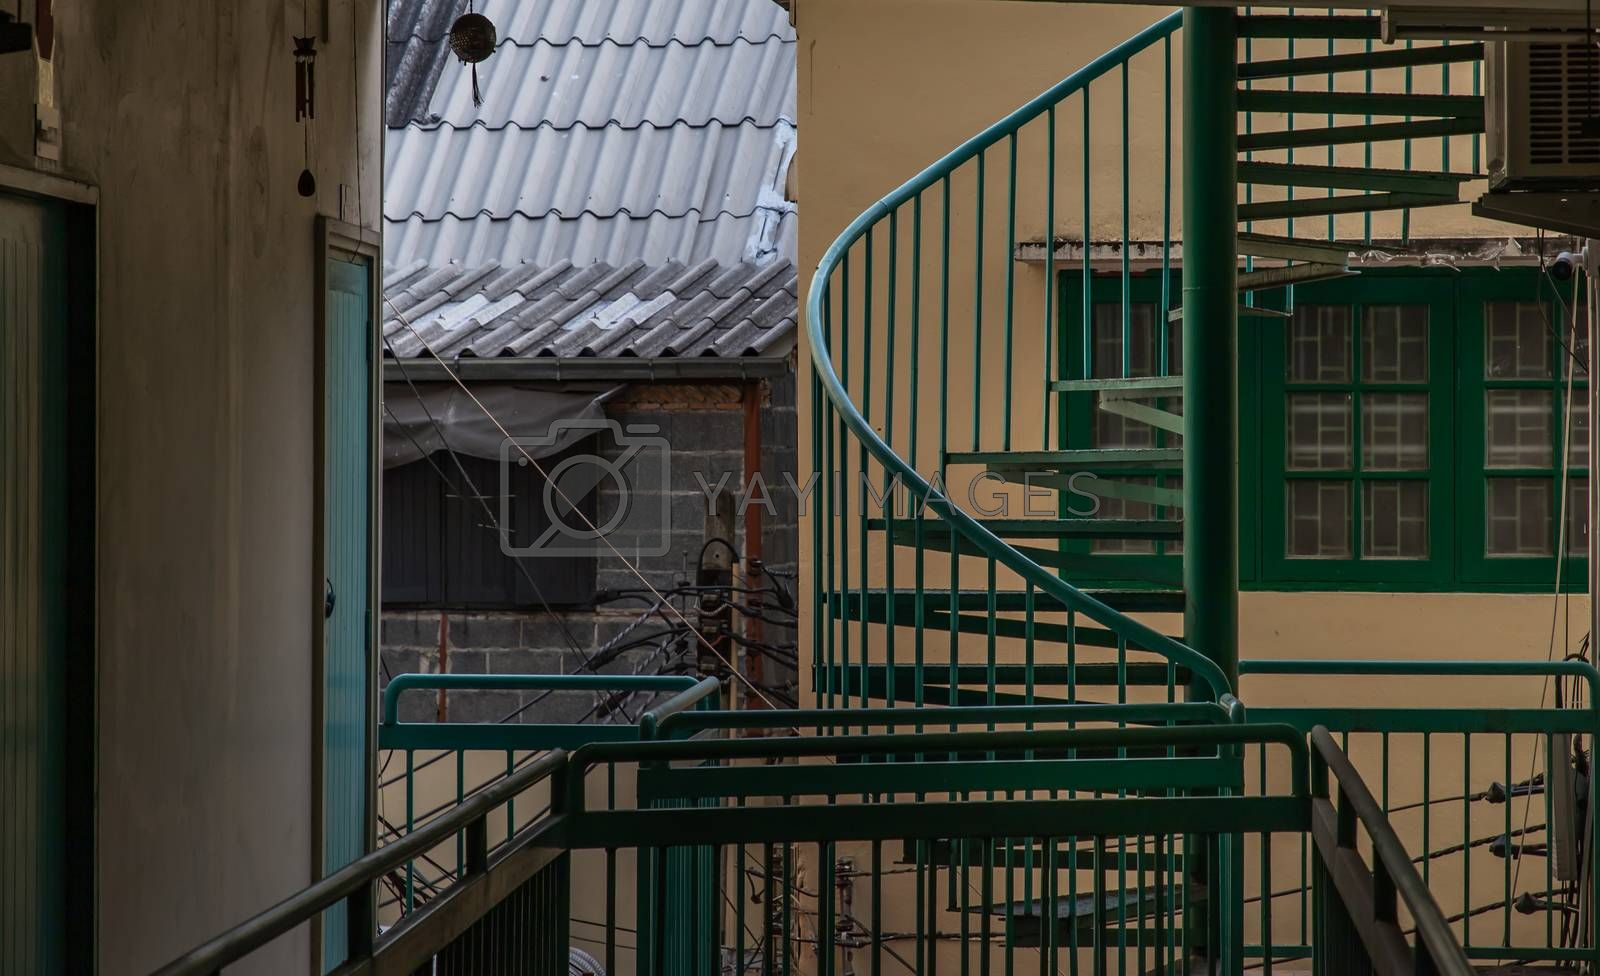 Bangkok, Thailand - 25 Jan 2020 : Green spiral staircase pattern in old apartment. Spiral stairs circle in courtyard architecture. Outdoor ladder decoration interior. Selective focus.